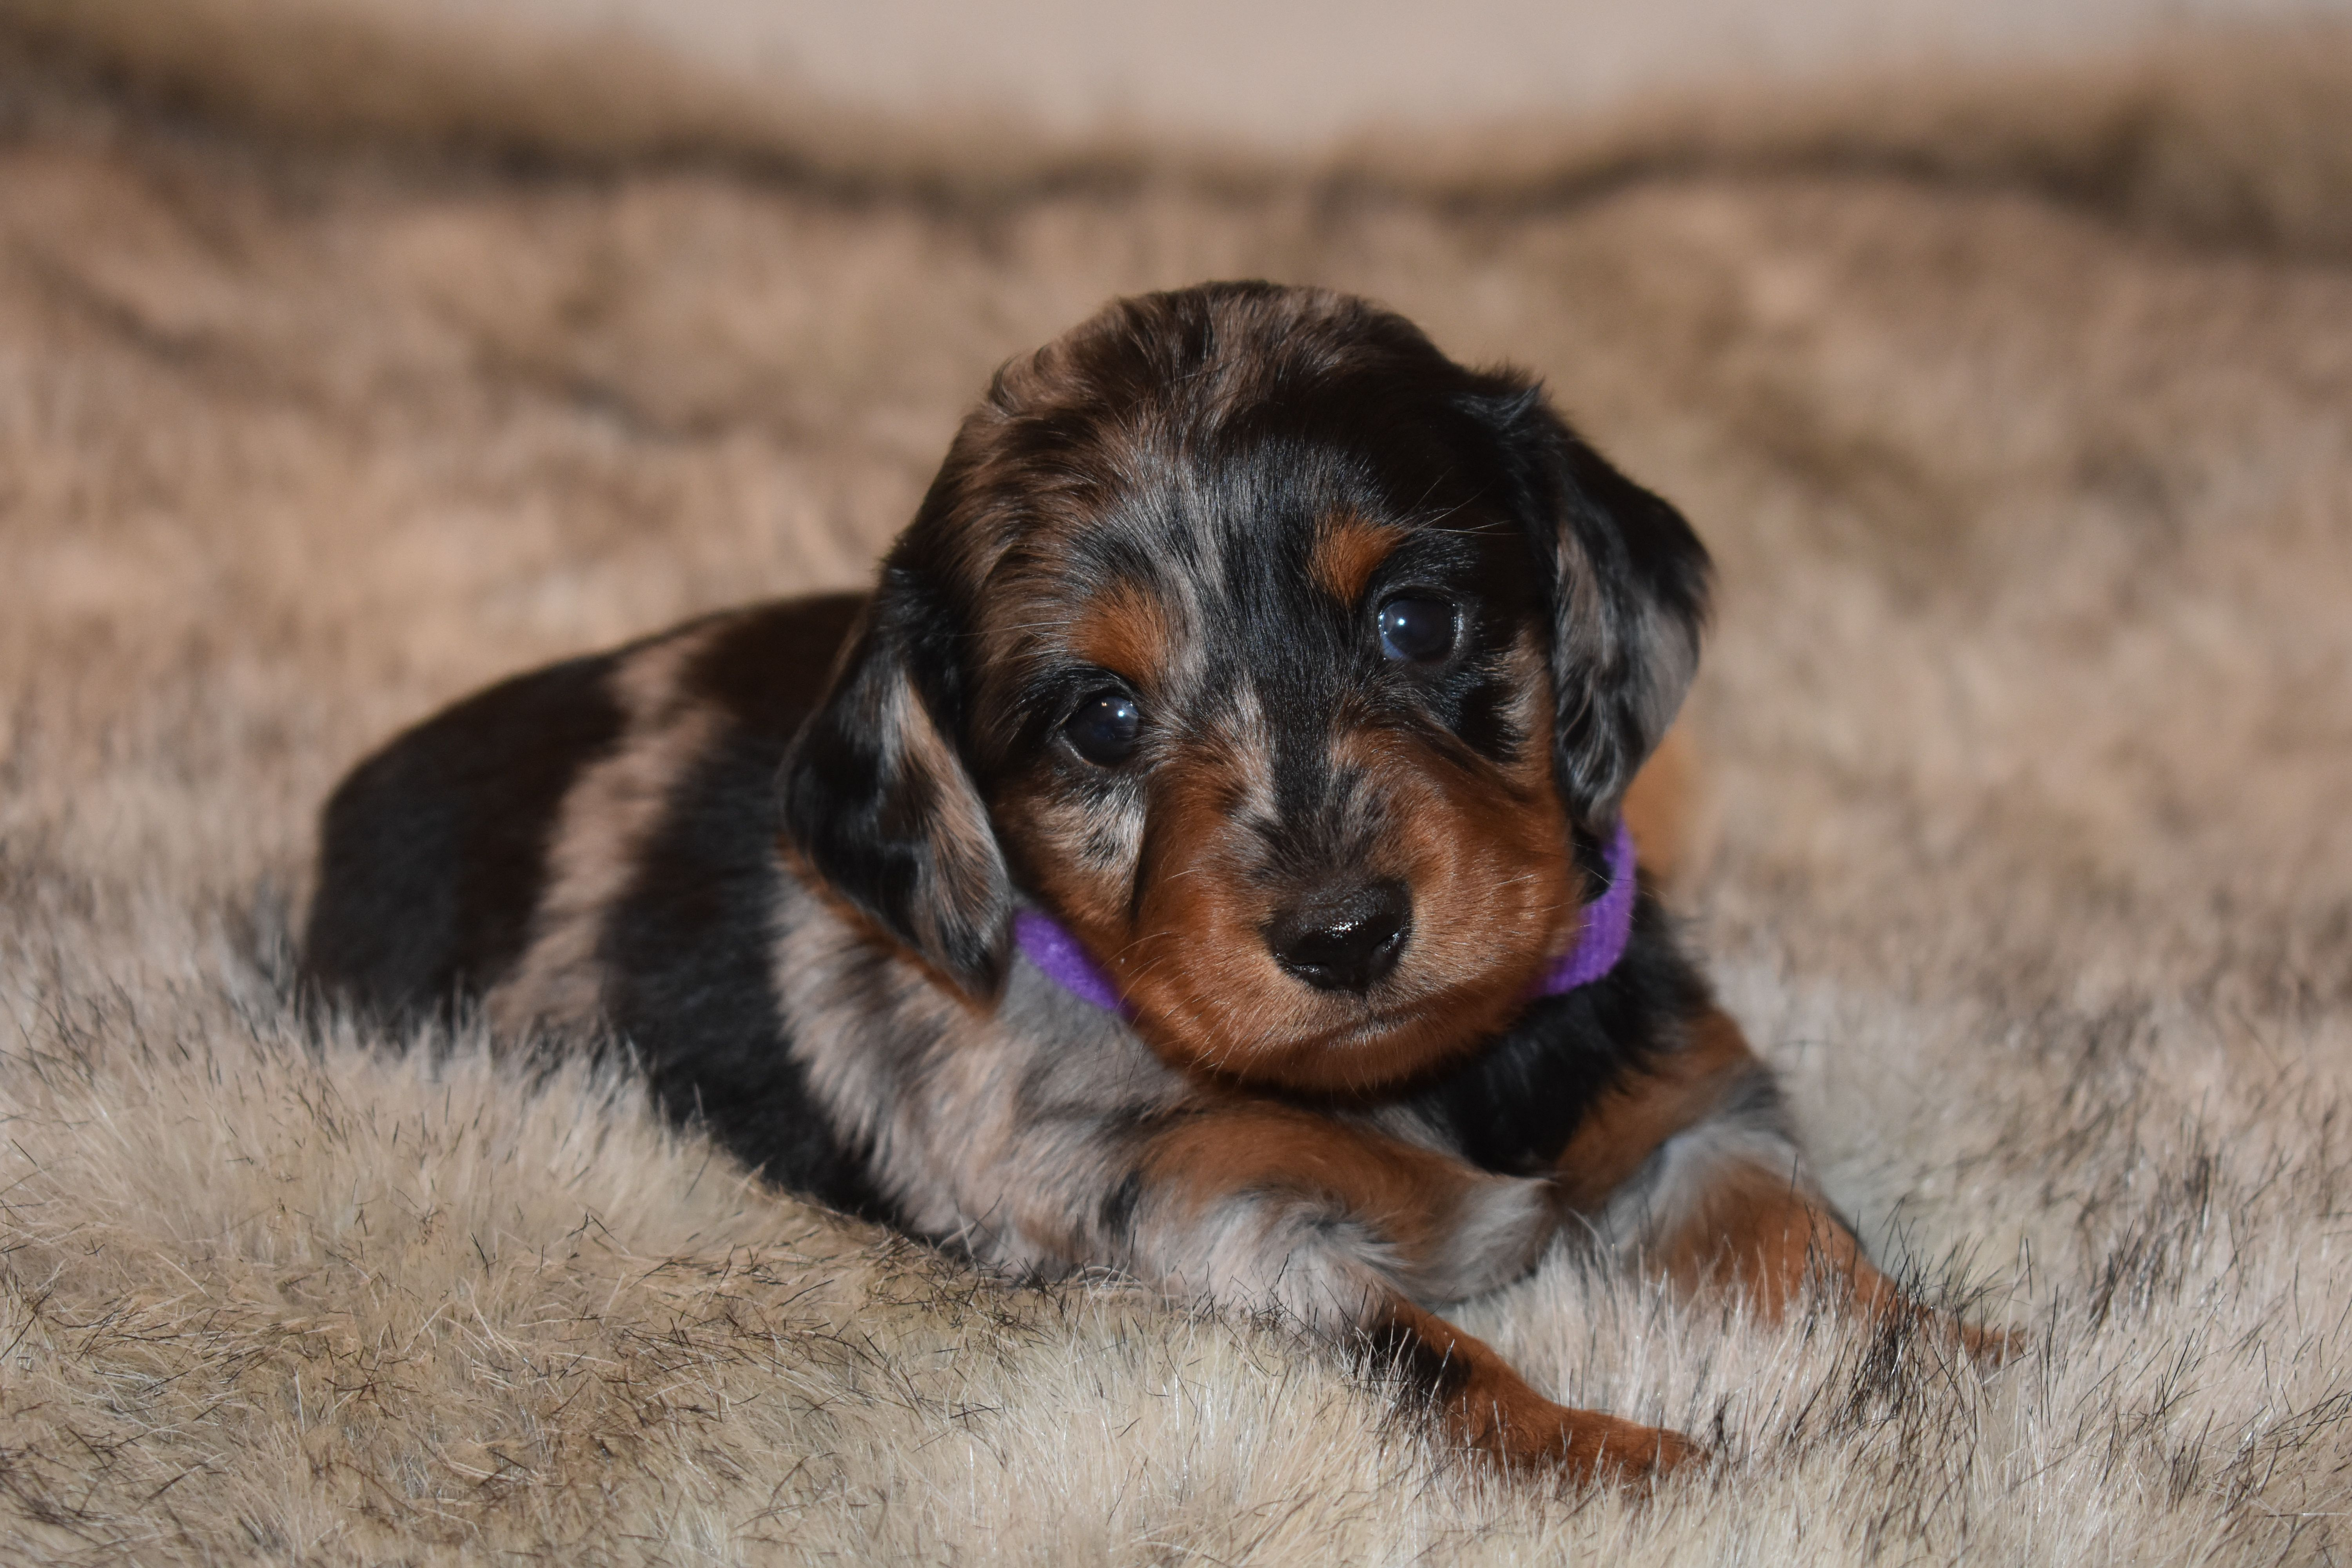 Pin By Select Dachshunds On Miniature Dachshunds In 2020 Dachshund Breeders Dachshund Puppies For Sale Miniature Dachshunds